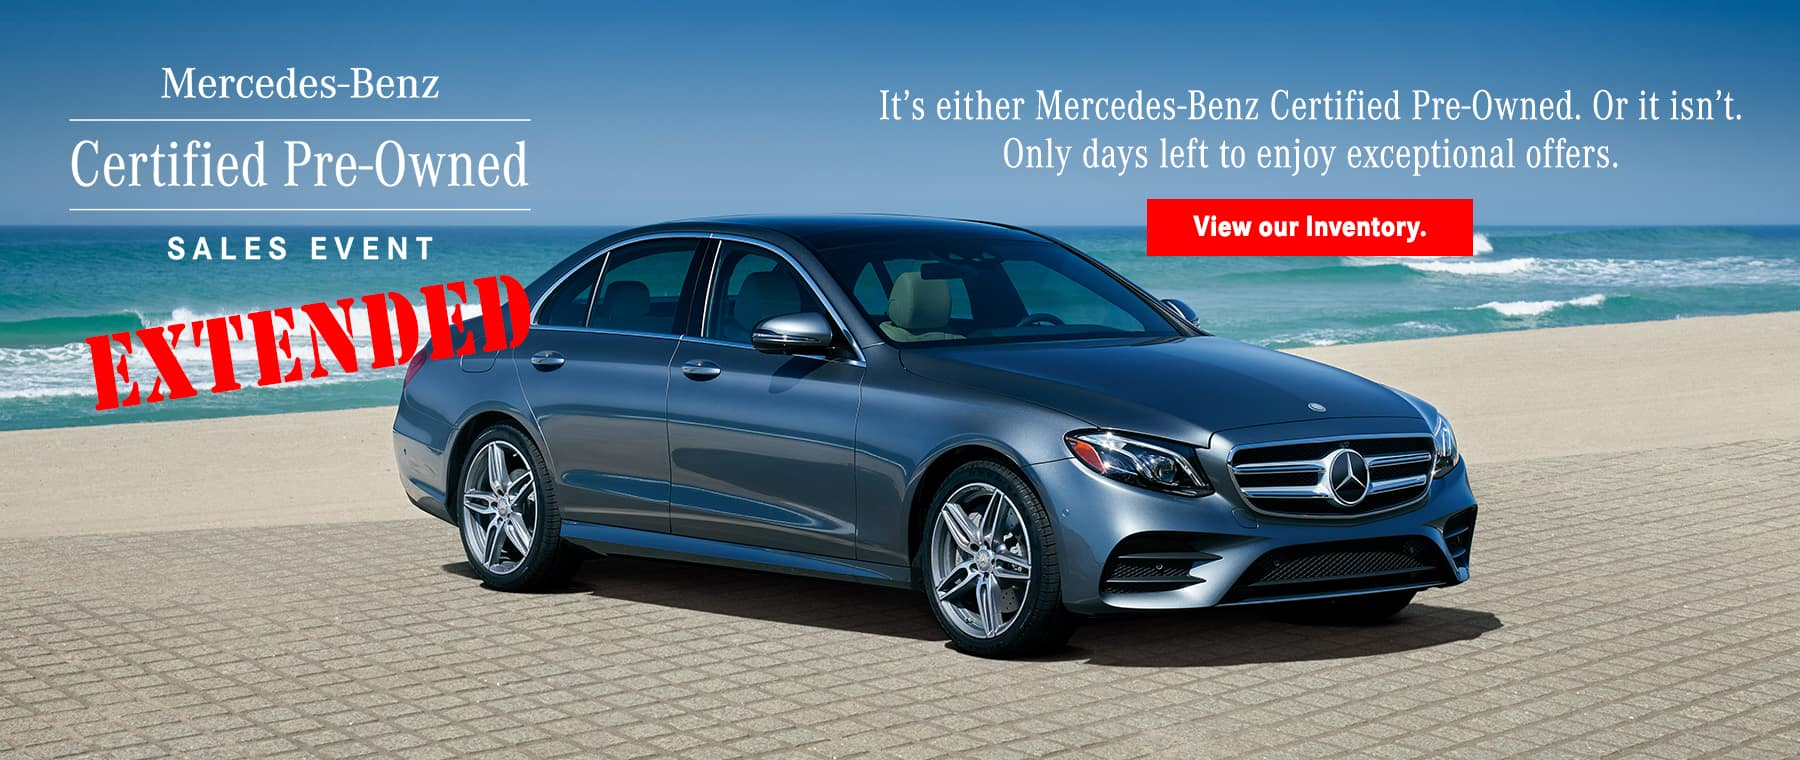 ... Mercedes Benz Of Greenwich General Manager The Mercedes Benz